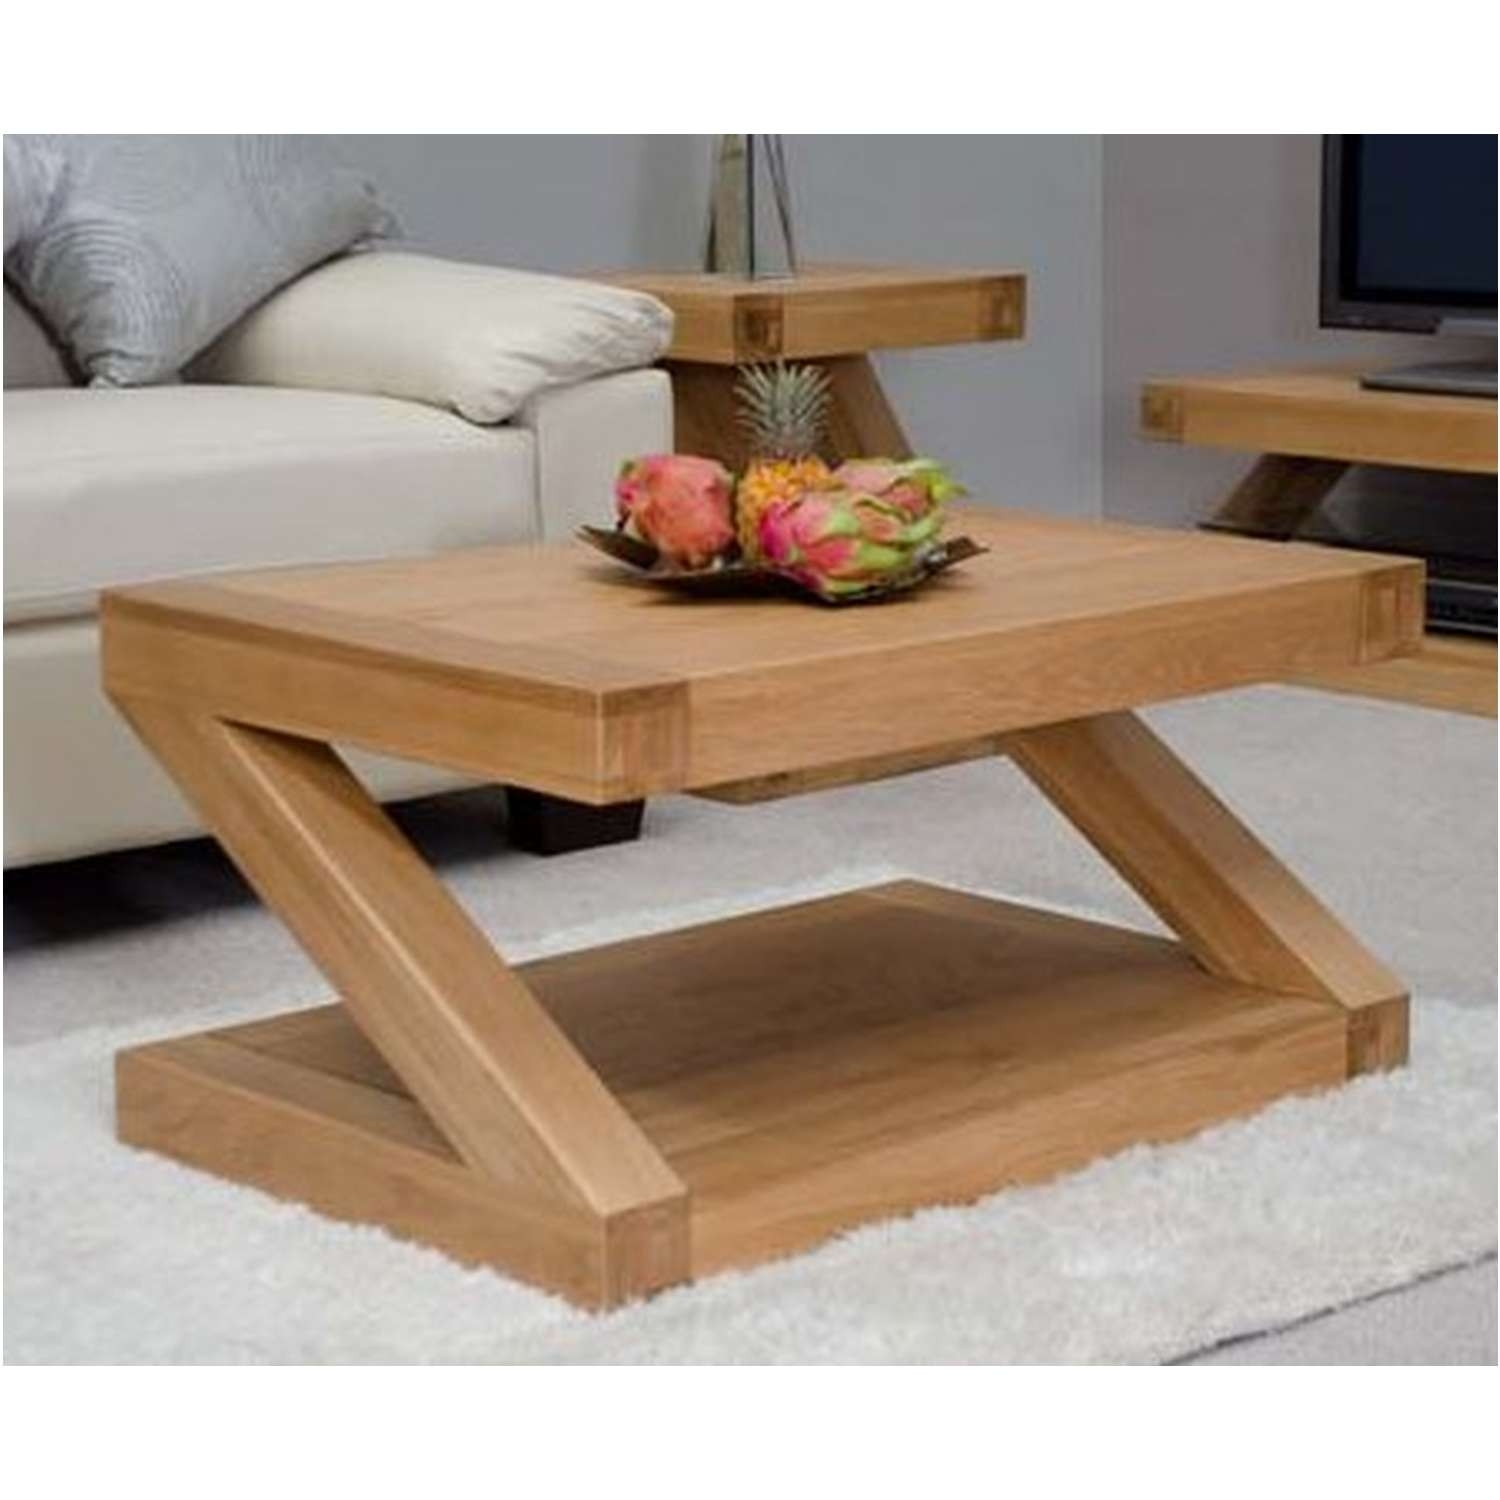 Solid Oak Coffee Tables For Popular Solid Oak Coffee Tables (View 16 of 20)